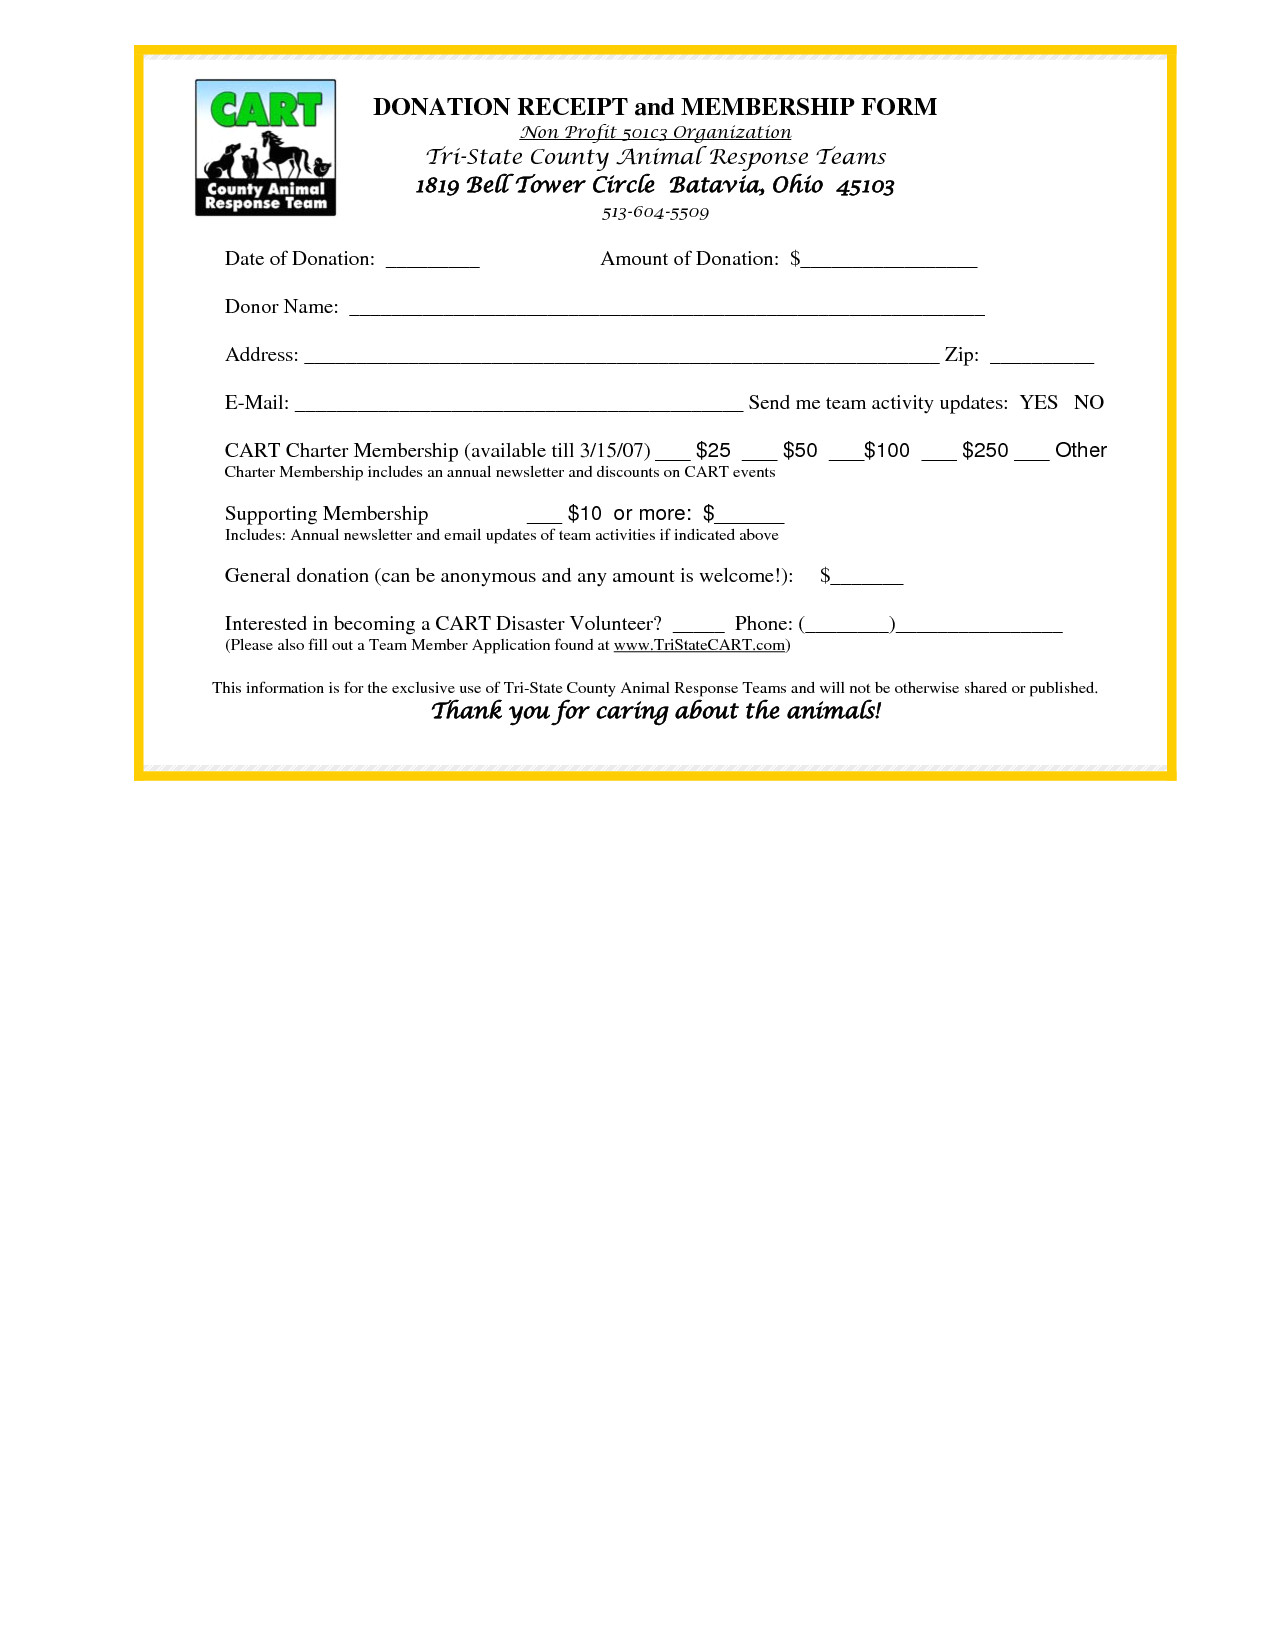 post gym membership receipt template 375122